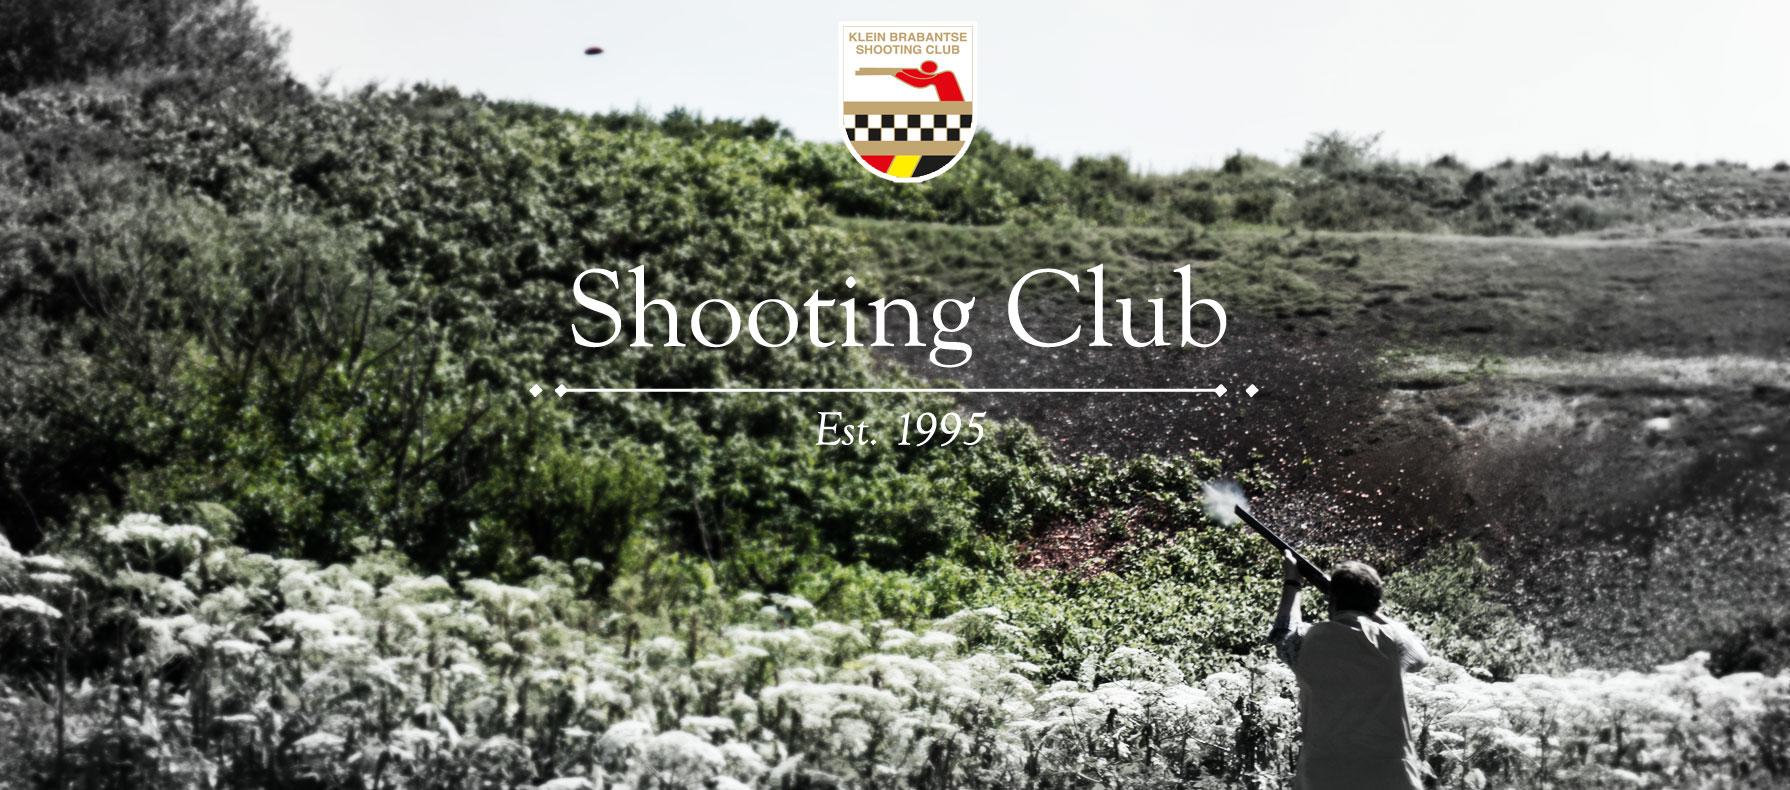 Shooting Club Ruisbroek Puurs